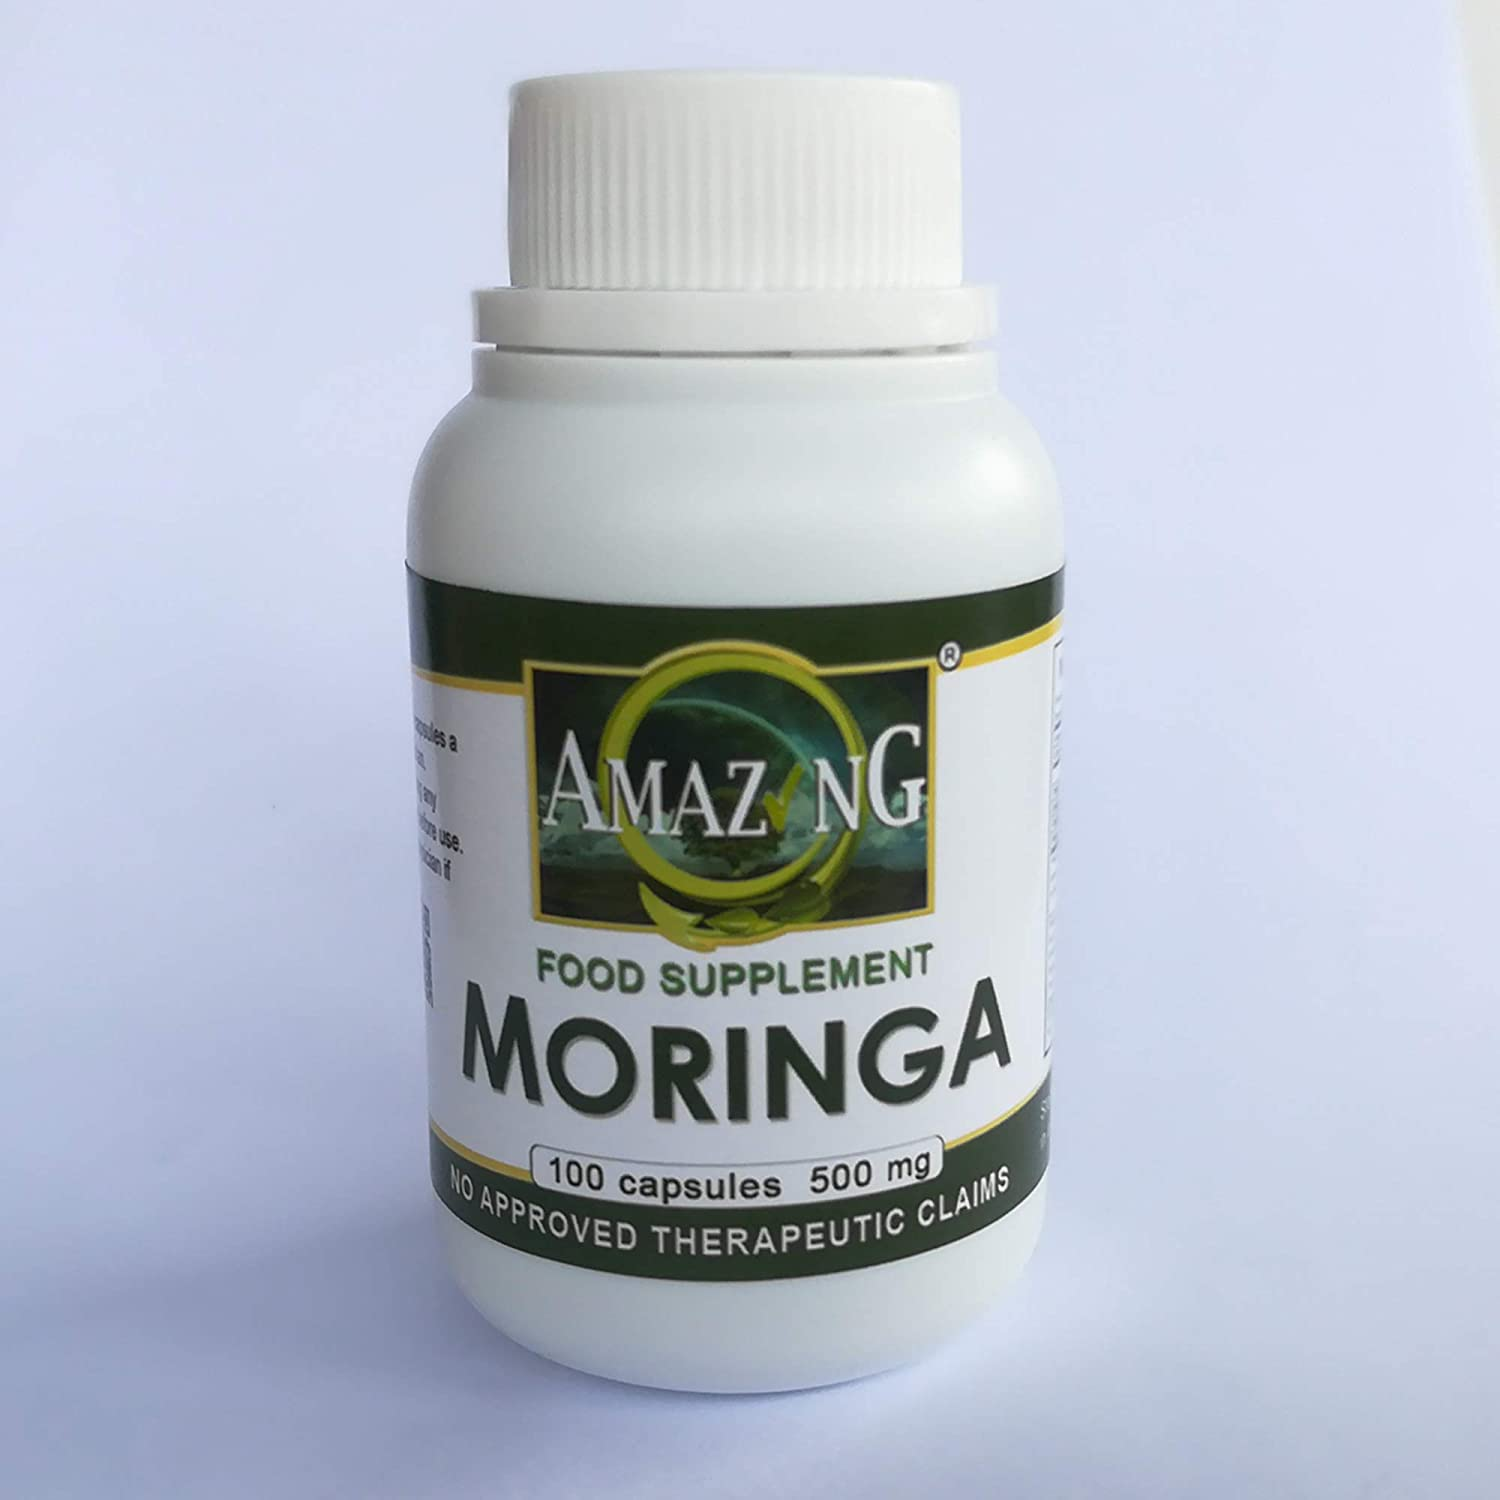 Moringa 500mg Amazing Food Supplements (100 Capsules)